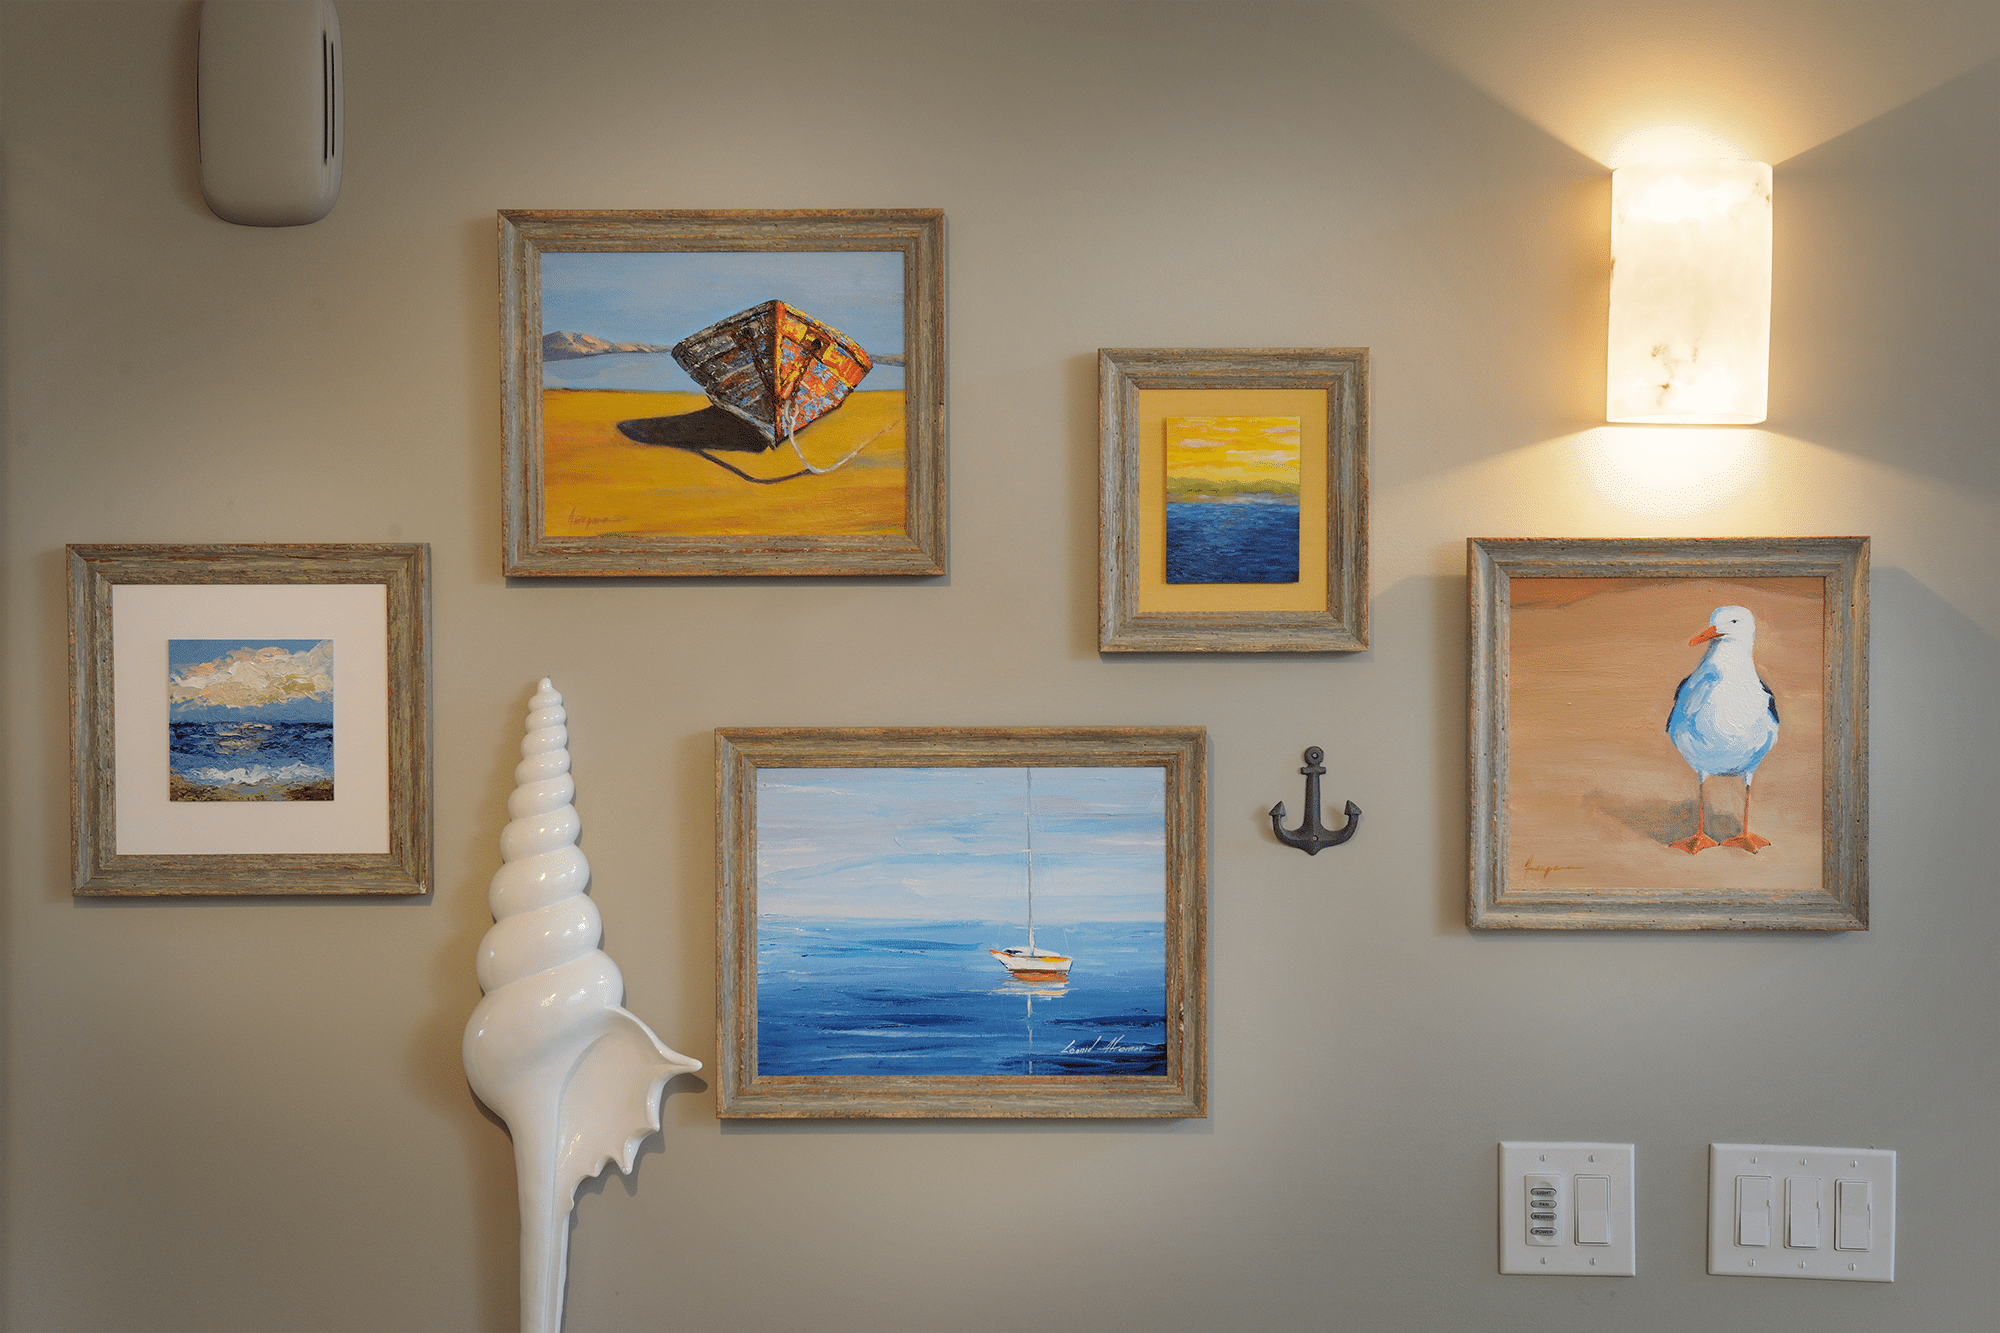 Five rectangular brown wooden framed paintings mounted on wall